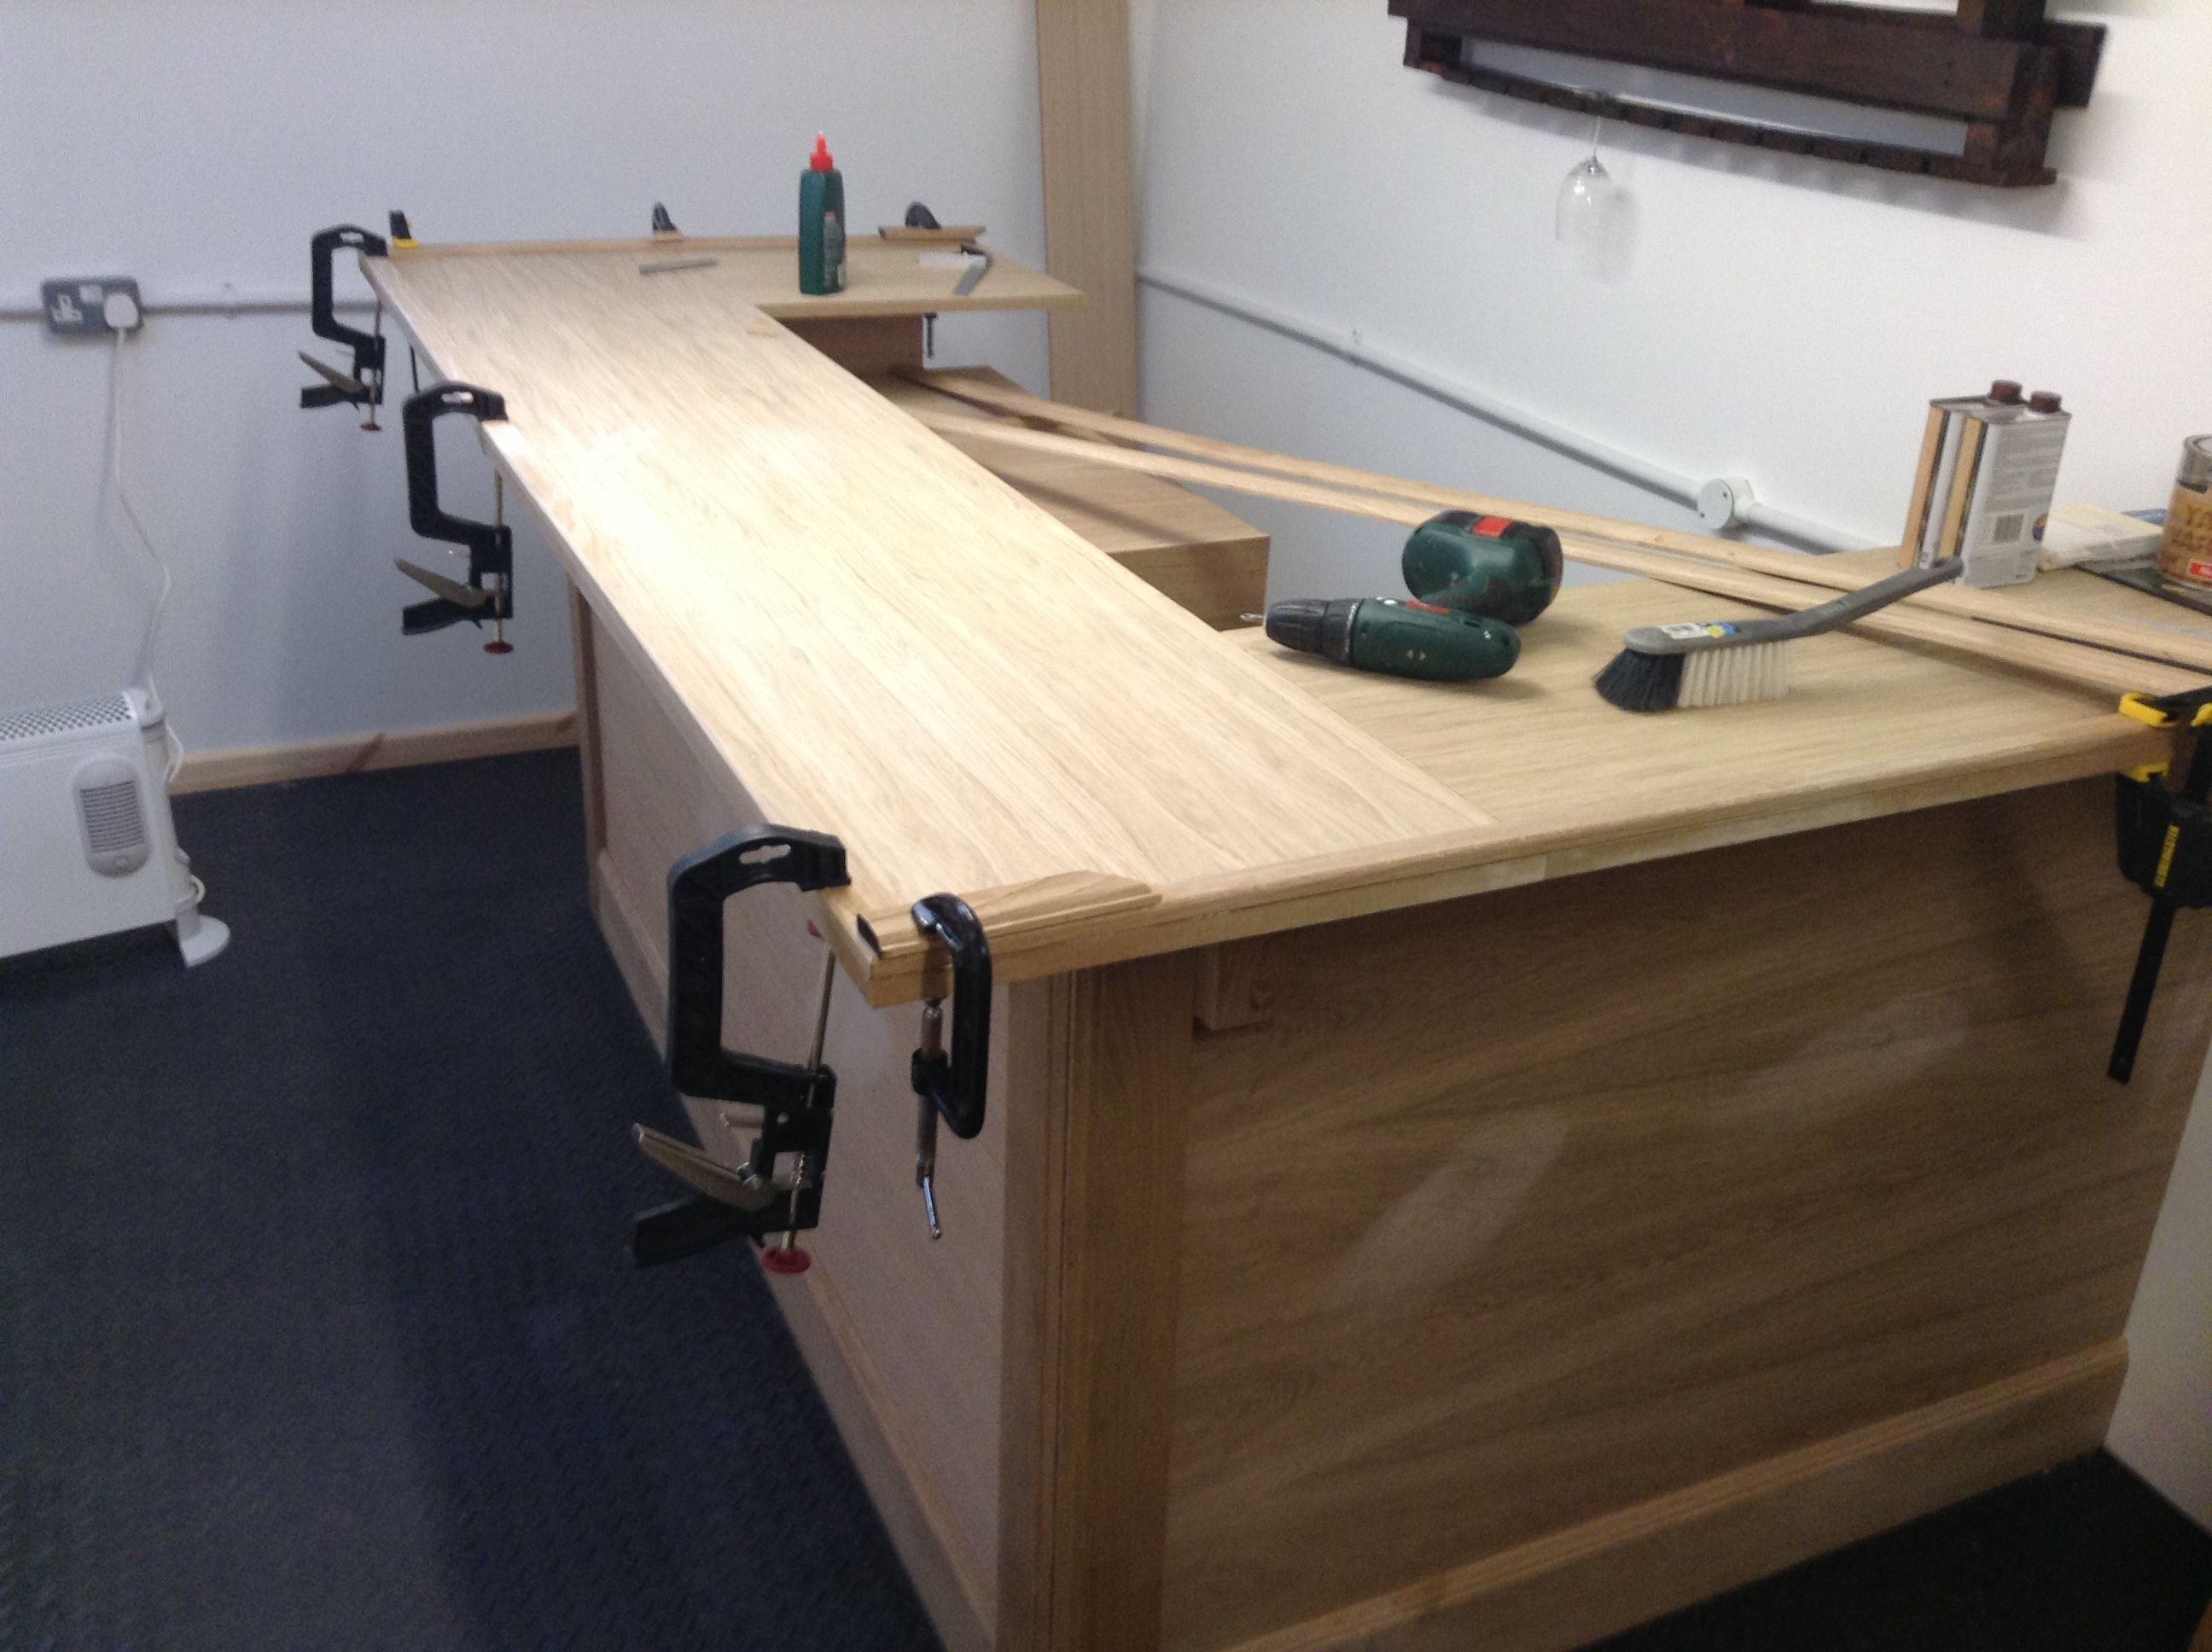 How To Build Your Own Home Bar Bars For Home Home Bar Plans